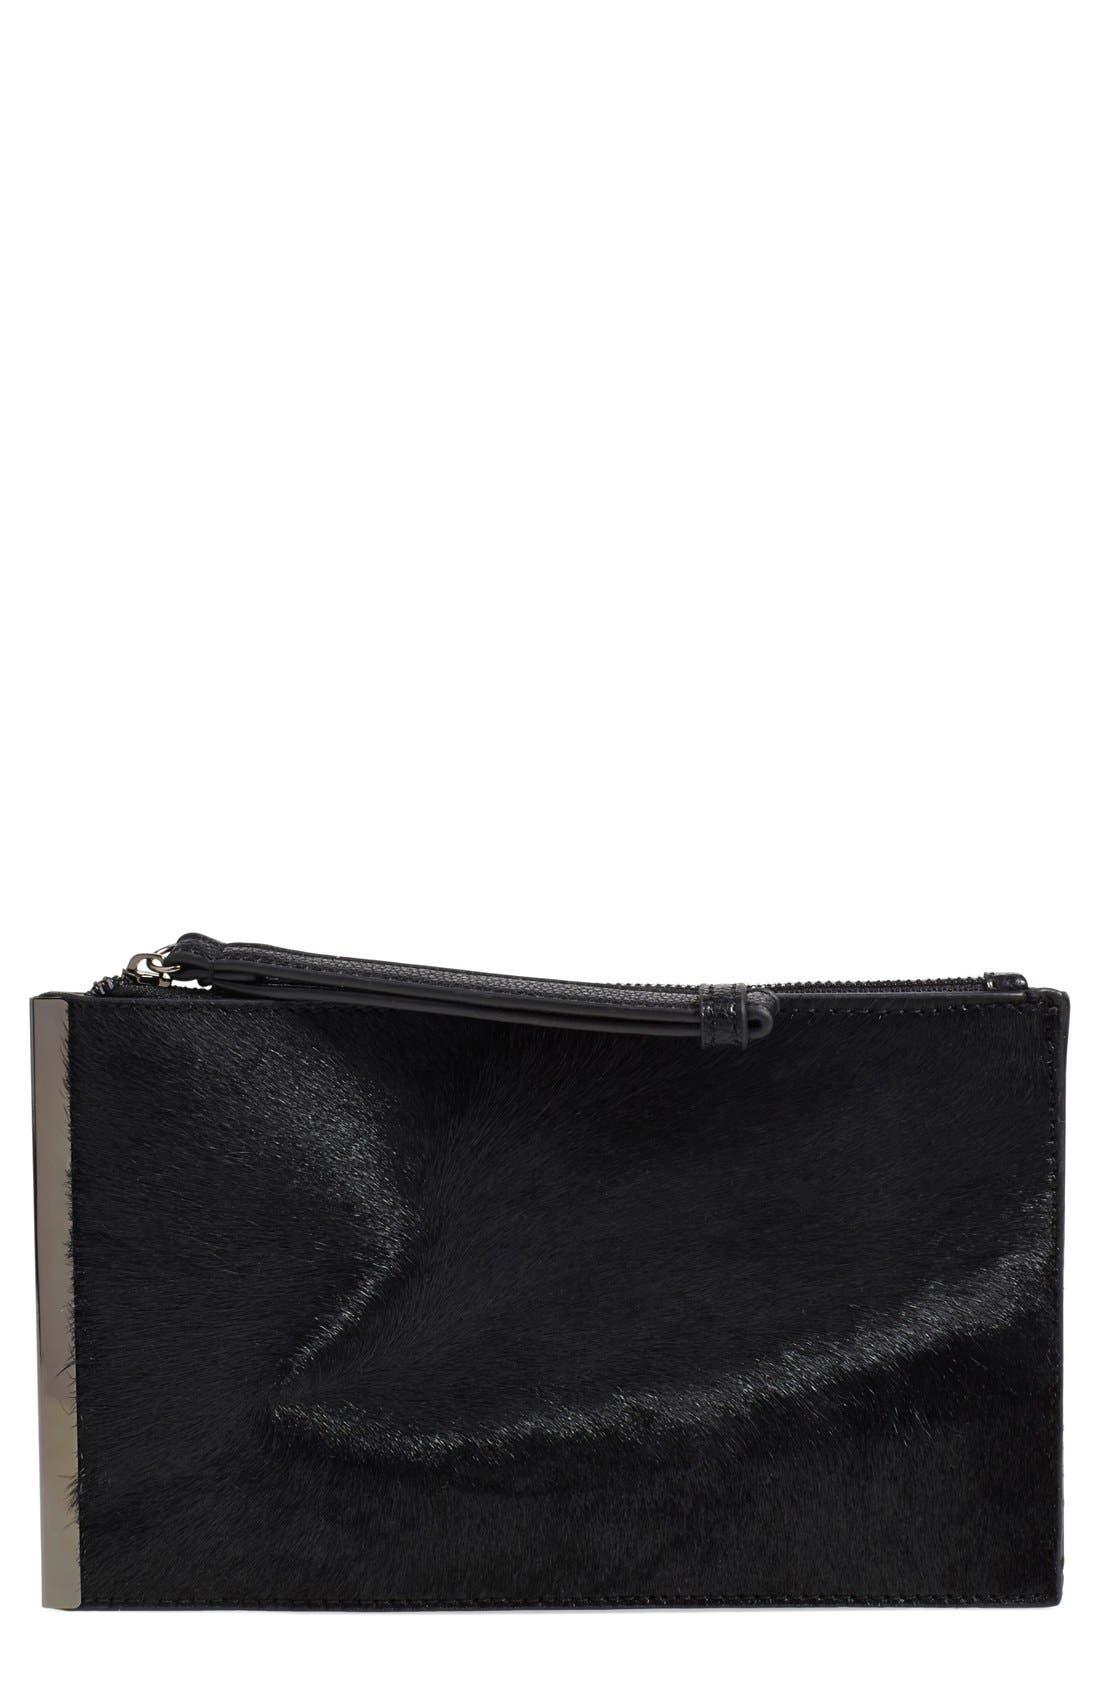 Alternate Image 1 Selected - Street Level Genuine Calf Hair Clutch